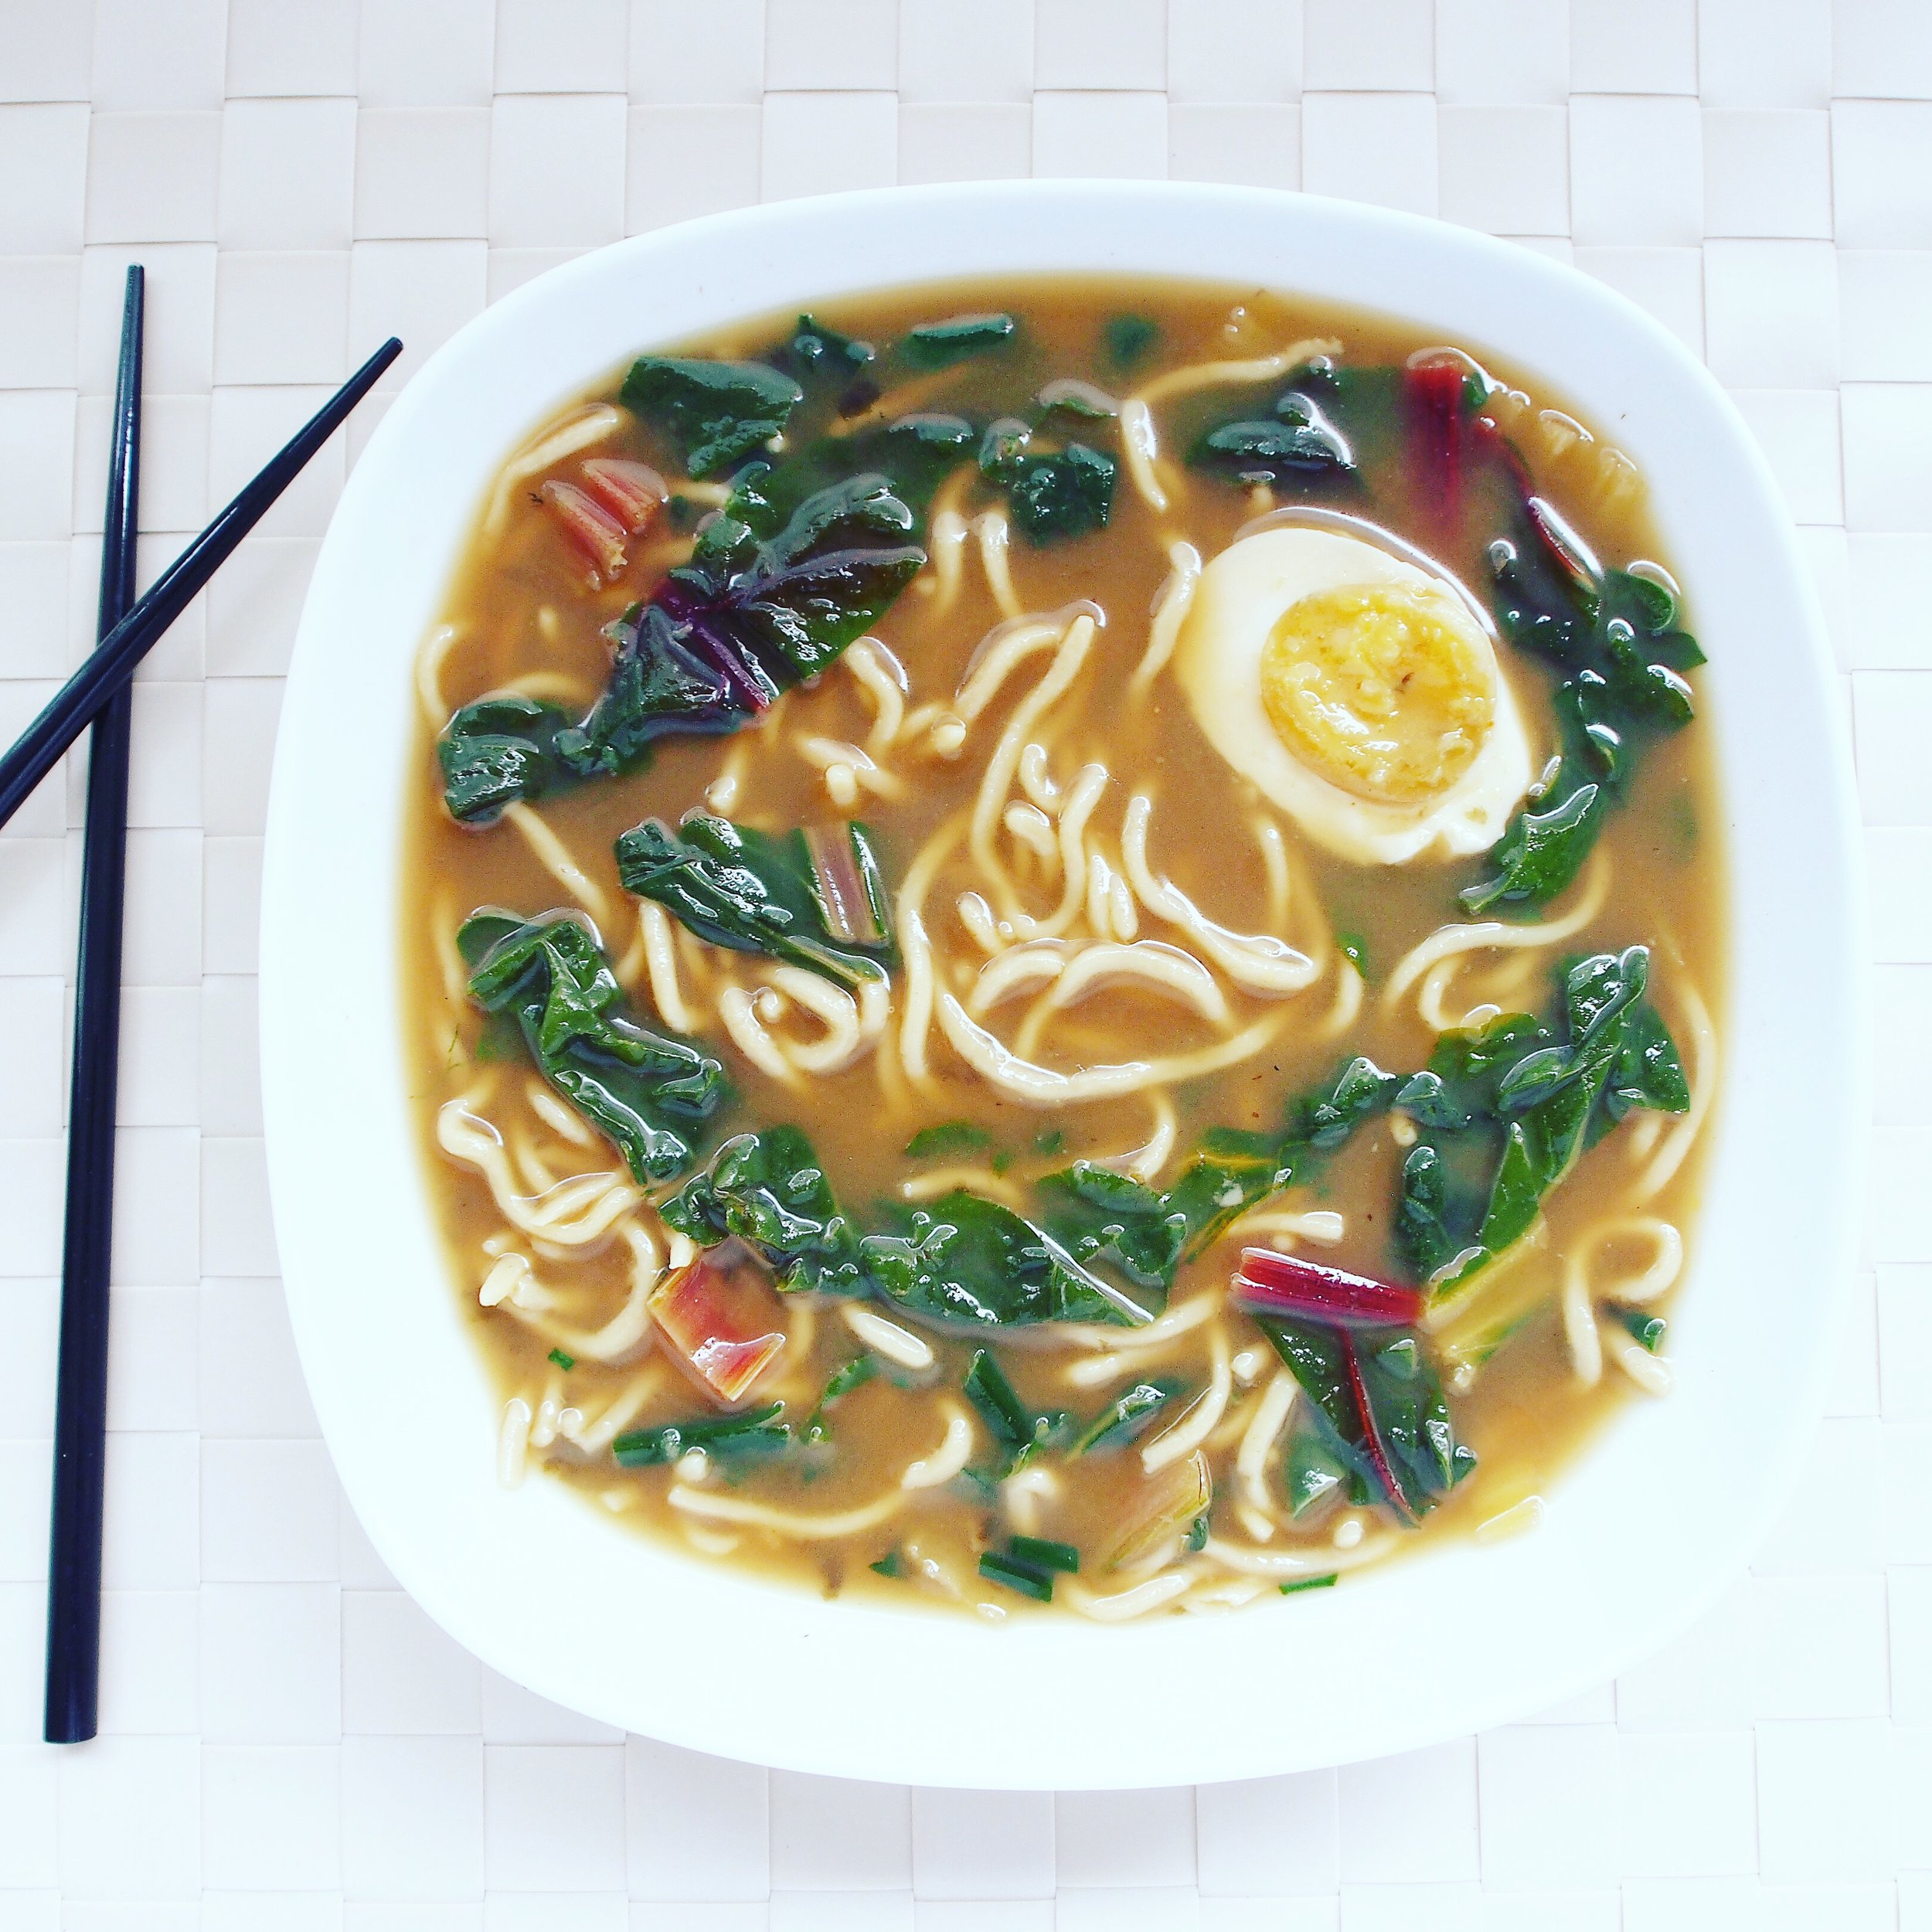 This easy ramen recipe is cooked with a Numo Bone Broth Kit and swiss chard and hard-boiled eggs.! Makes for a super healthy ramen recipe!